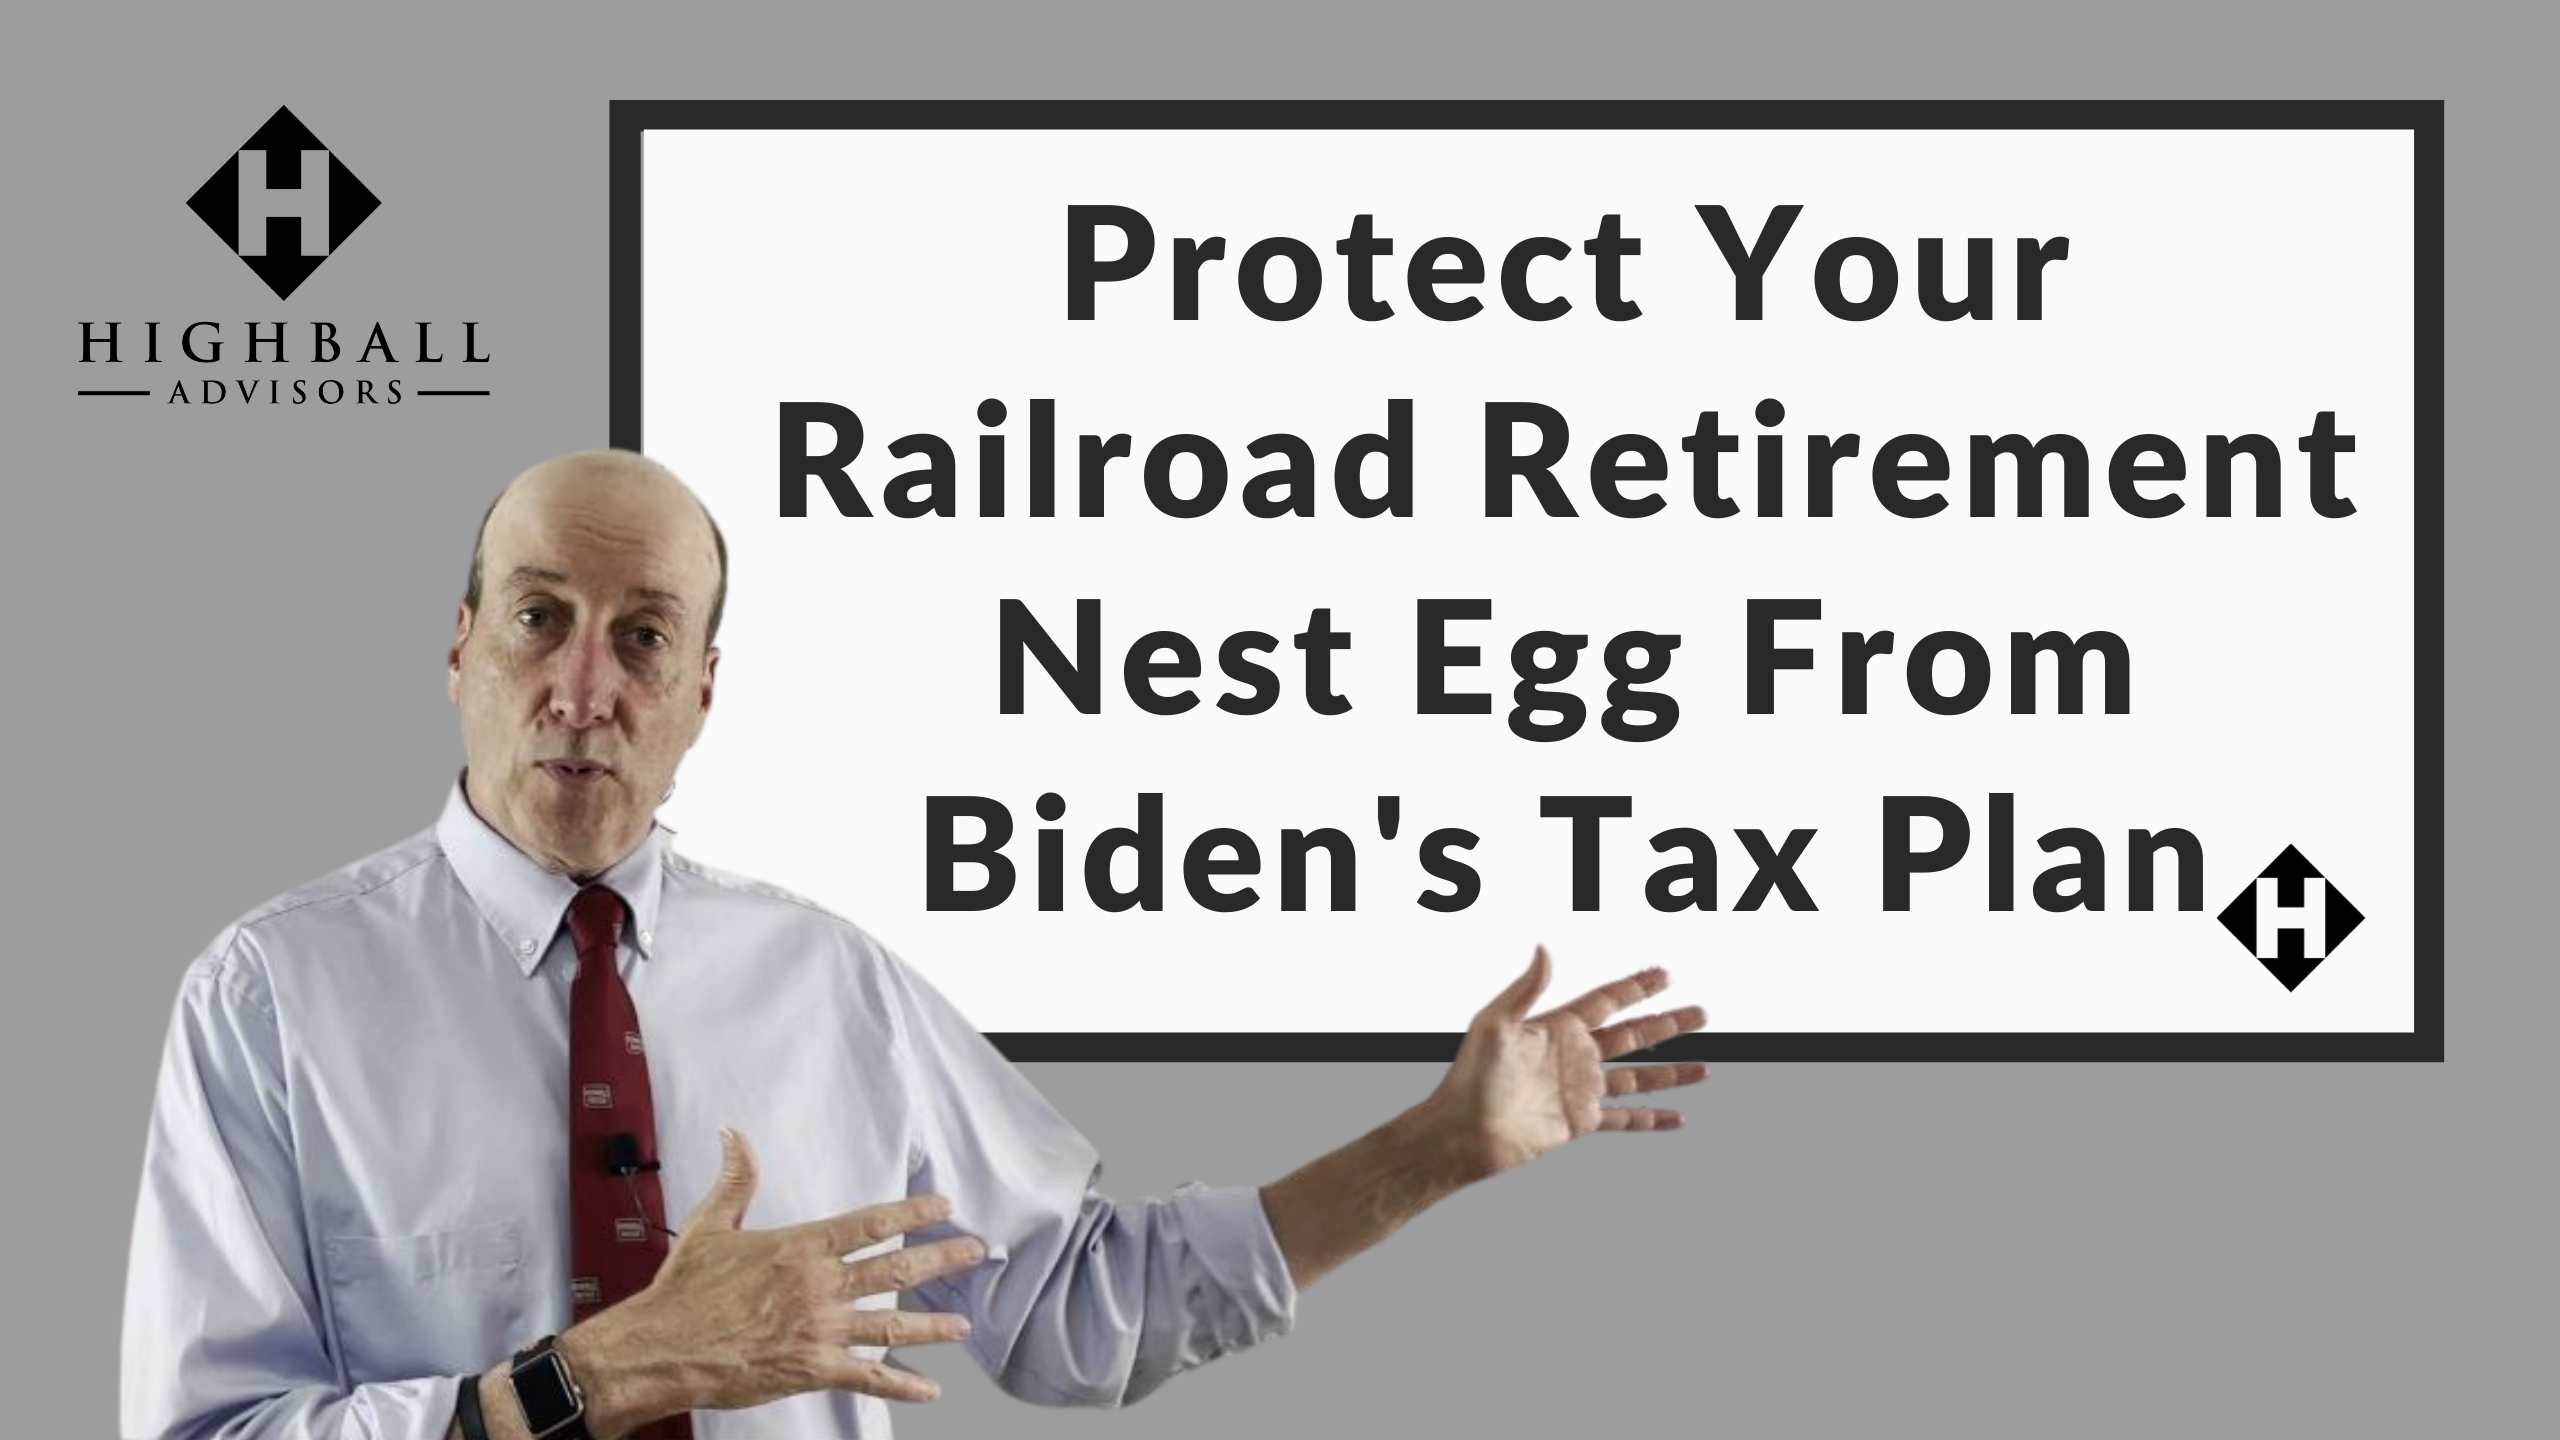 Protect Your Railroad Retirement Nest Egg From Biden's Tax Plan Thumbnail